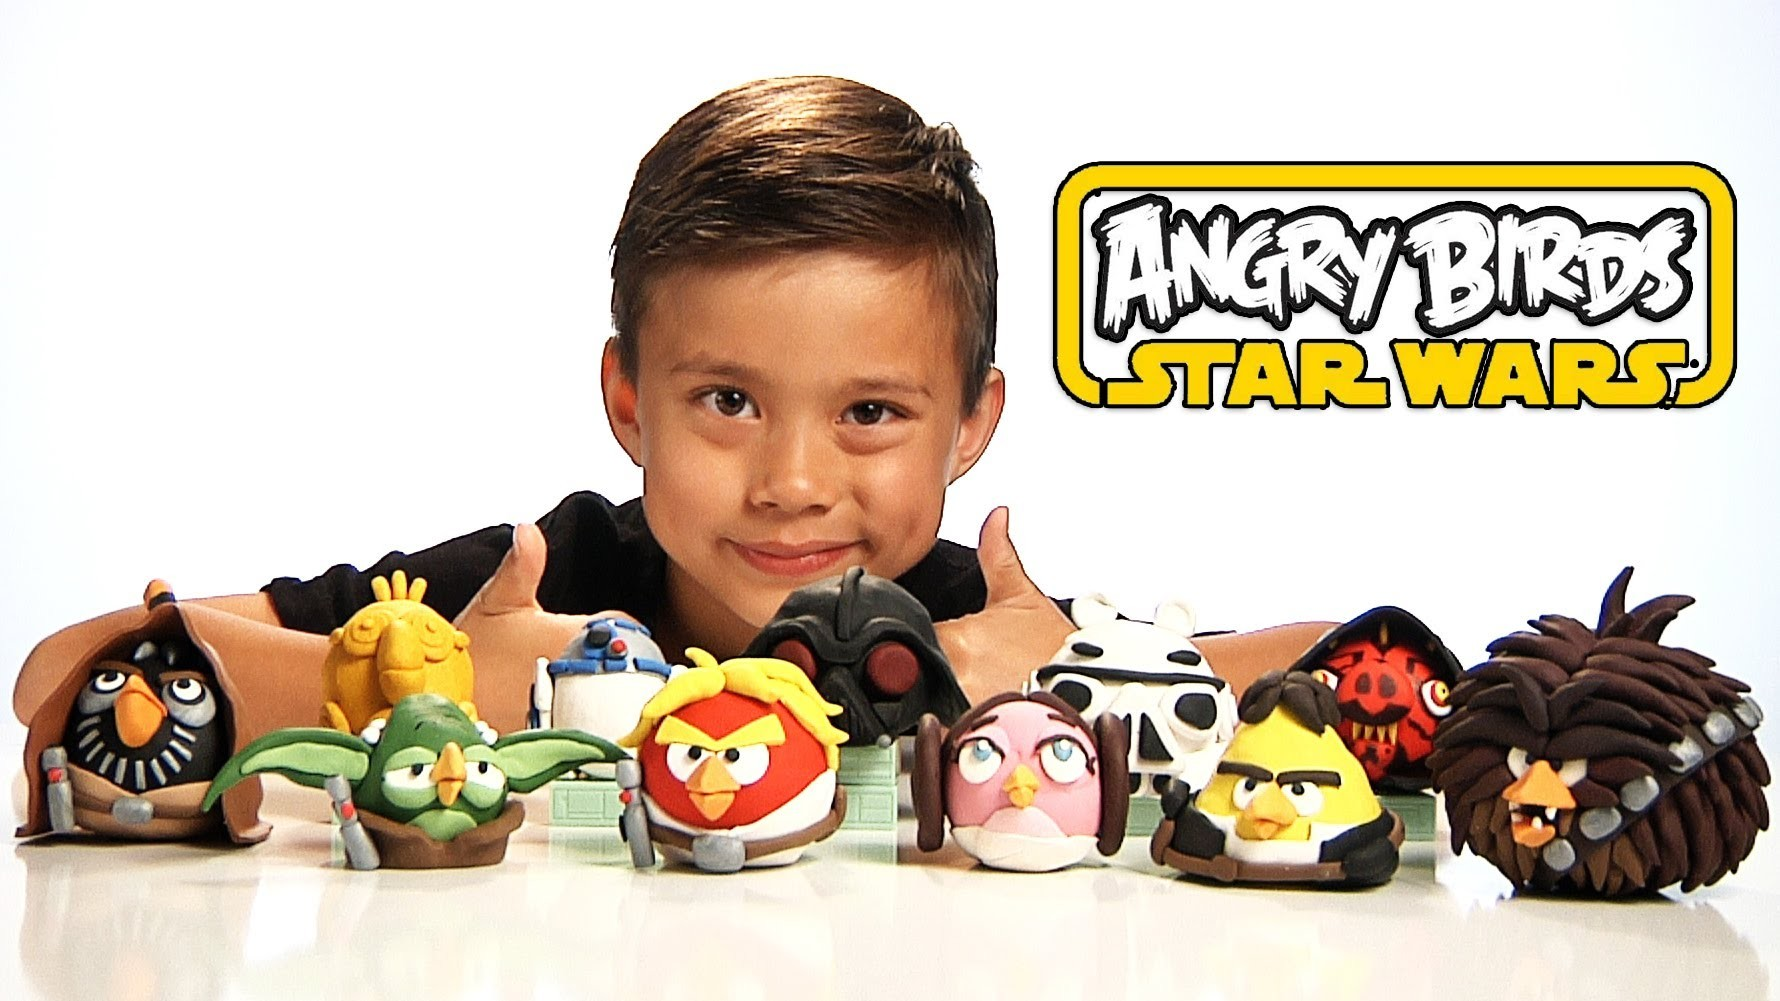 Angry Birds STAR WARS CLAY MODELS - All NEW EPIC Figures! Sculpey